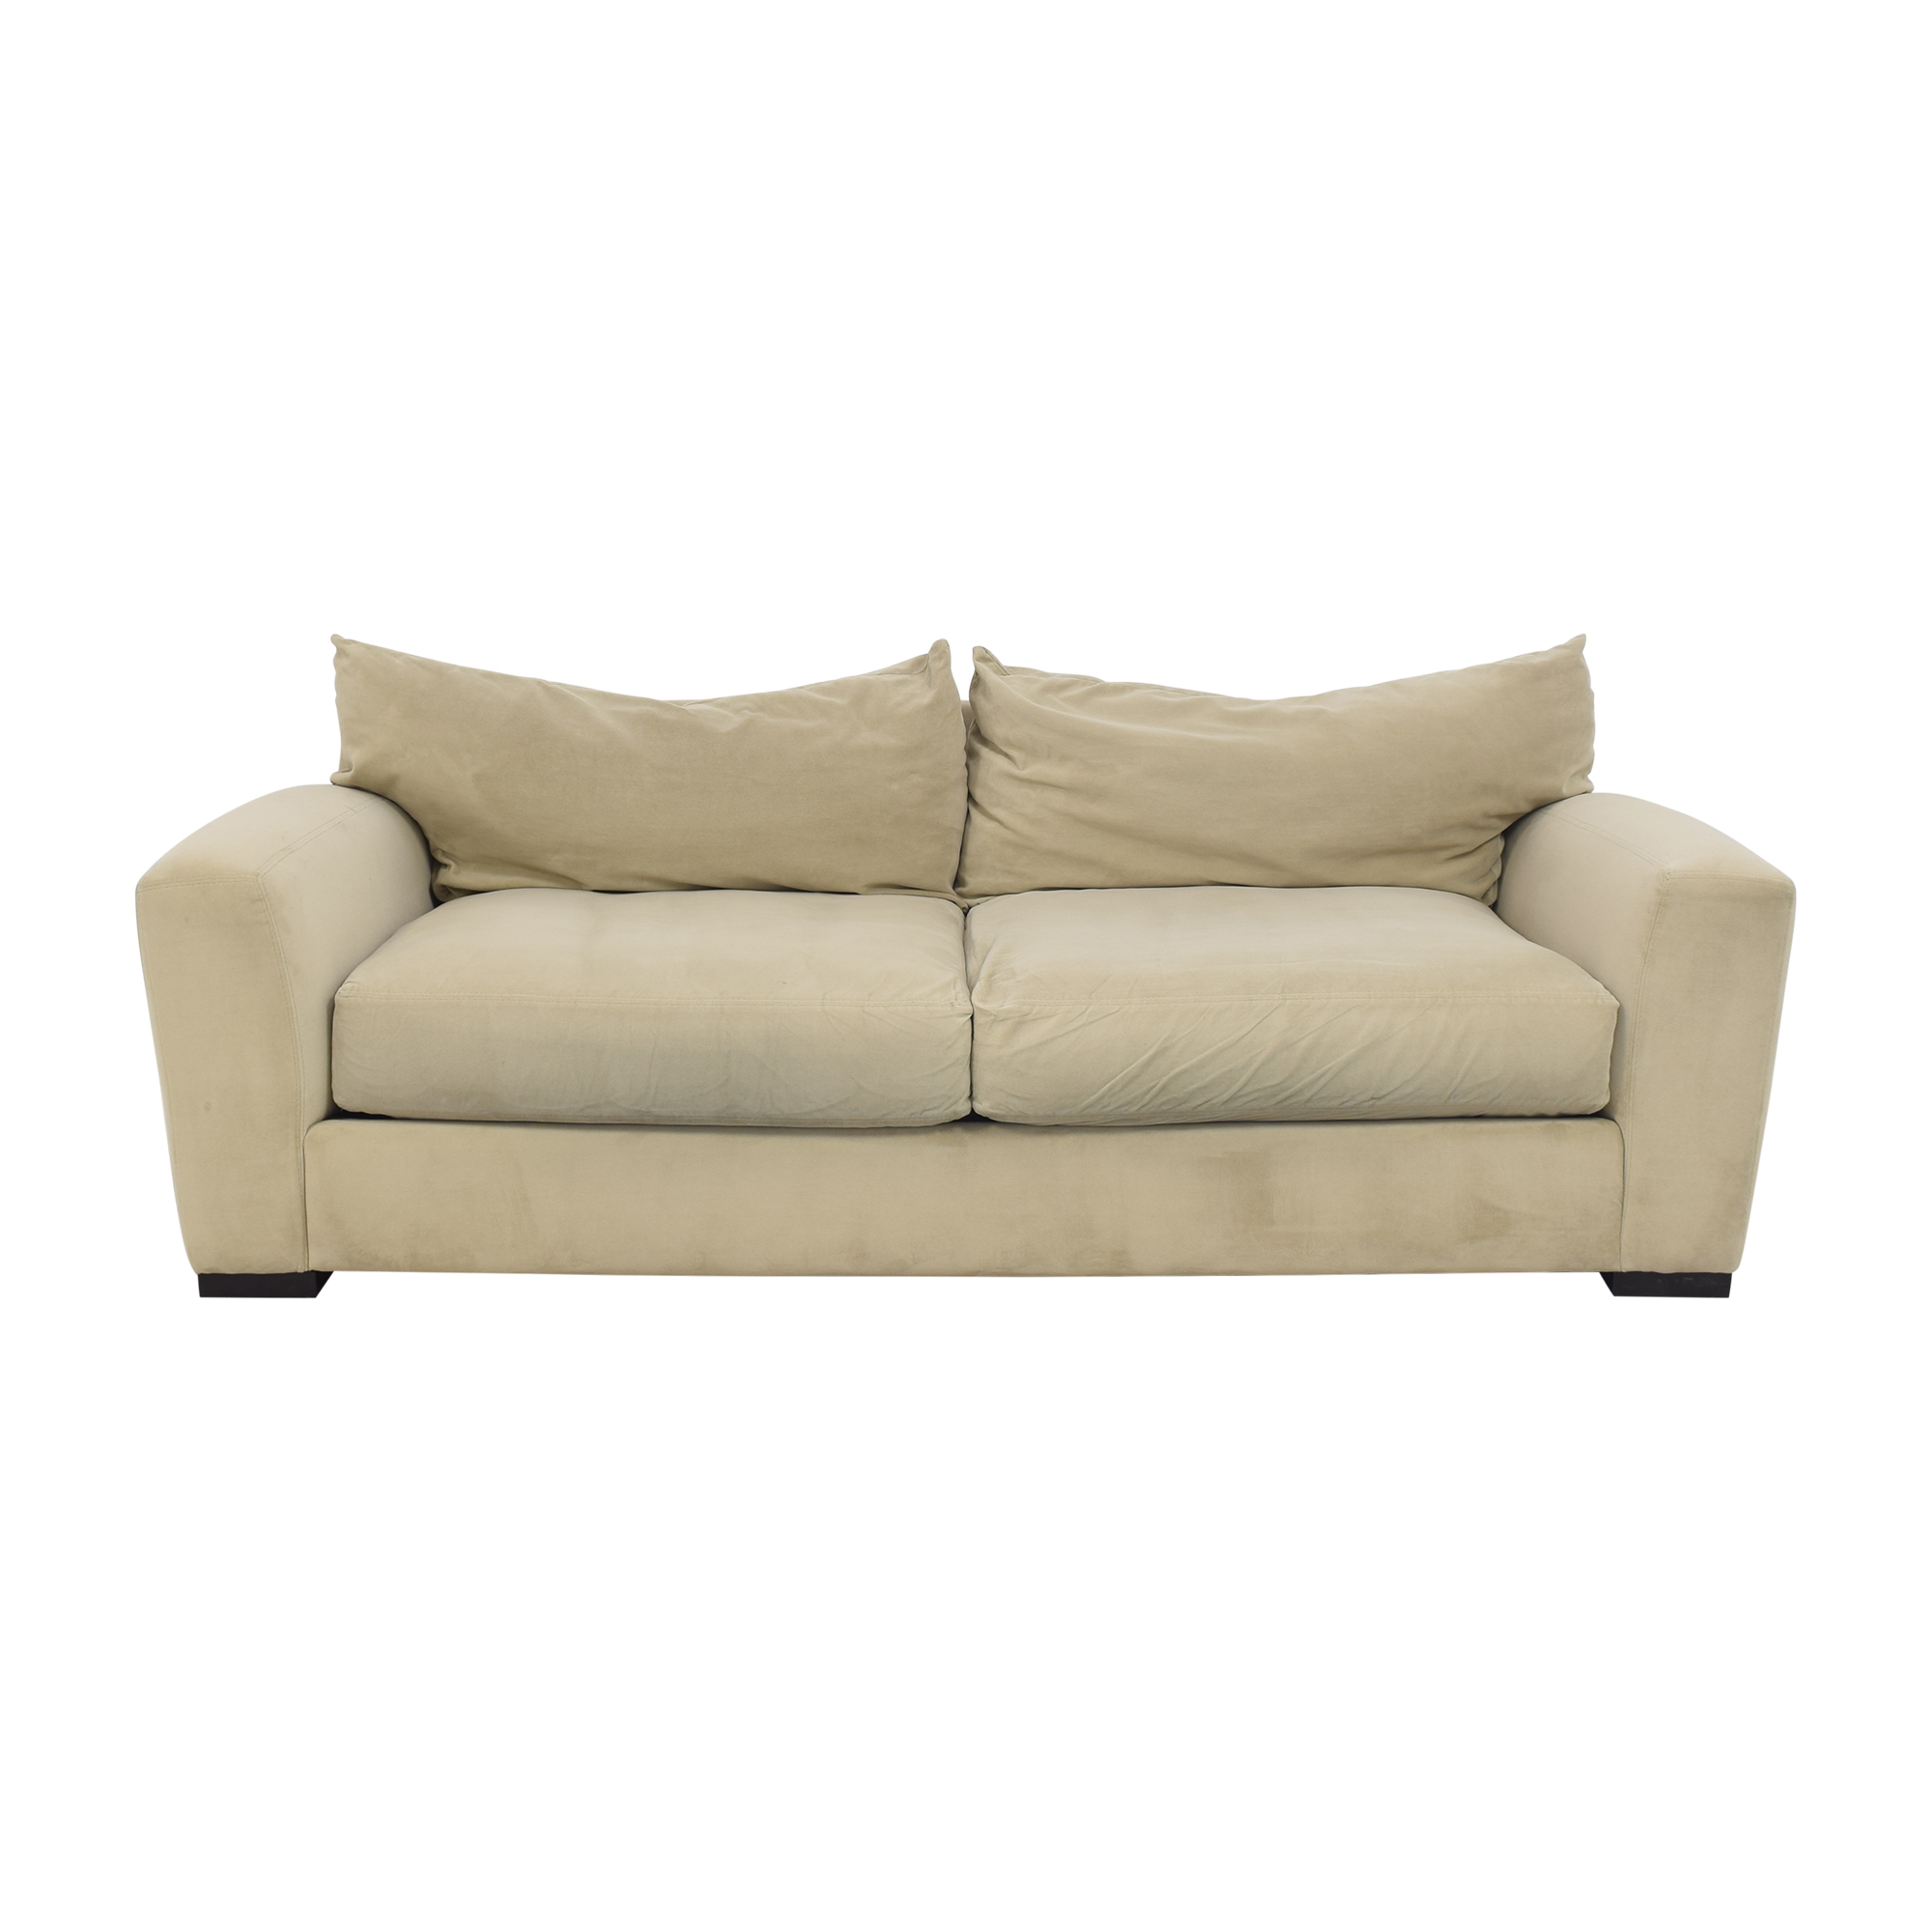 Raymour & Flanigan Raymour & Flanigan Two Cushion Sofa second hand